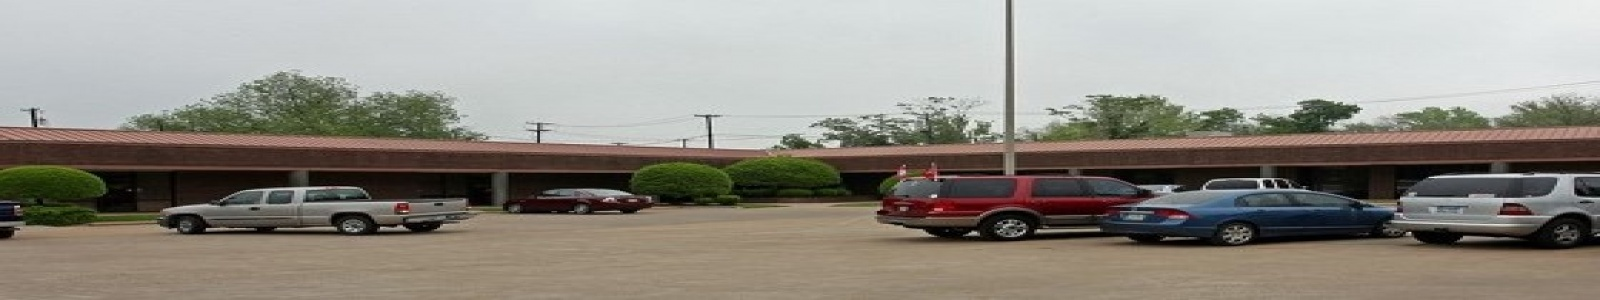 1626 West Main Street, Waxahachie, Texas 75165, ,Commercial Property,For Lease,Medical Plaza,West Main ,1055